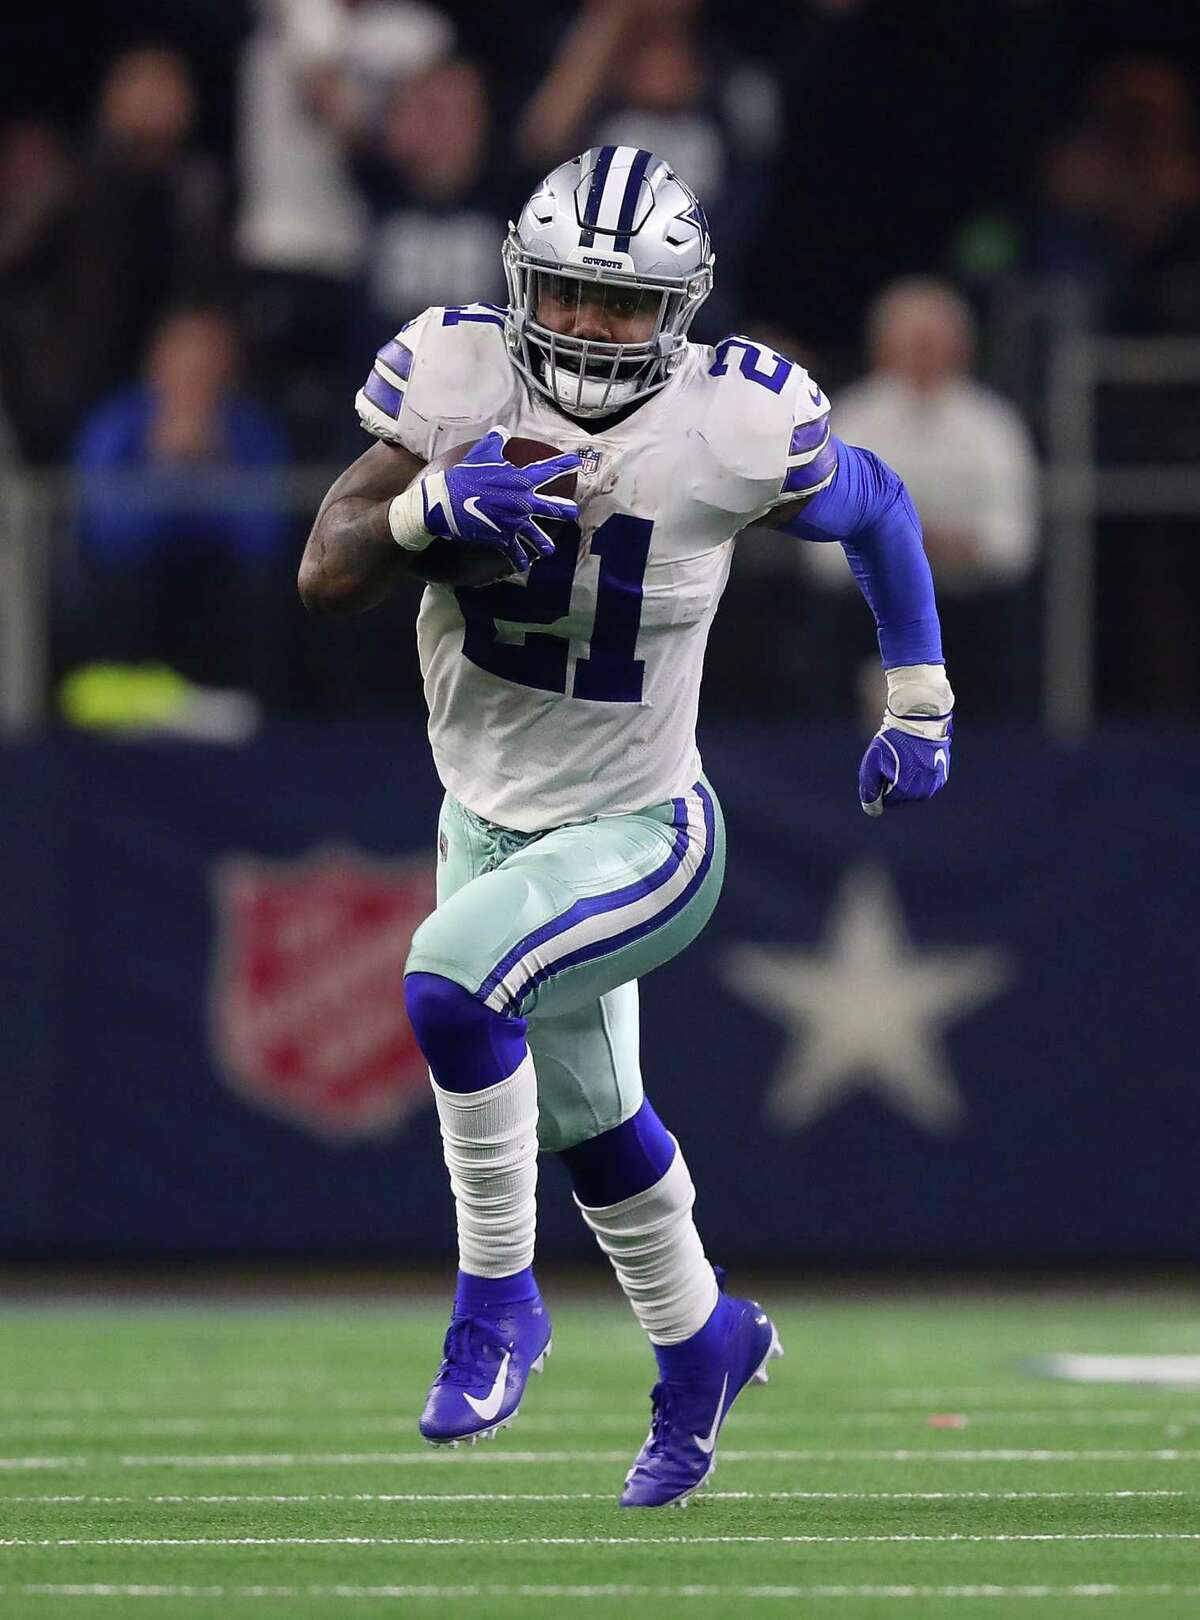 ARLINGTON, TEXAS - JANUARY 05: Ezekiel Elliott #21 of the Dallas Cowboys runs the ball in the second quarter against the Seattle Seahawks during the Wild Card Round at AT&T Stadium on January 05, 2019 in Arlington, Texas. (Photo by Tom Pennington/Getty Images)